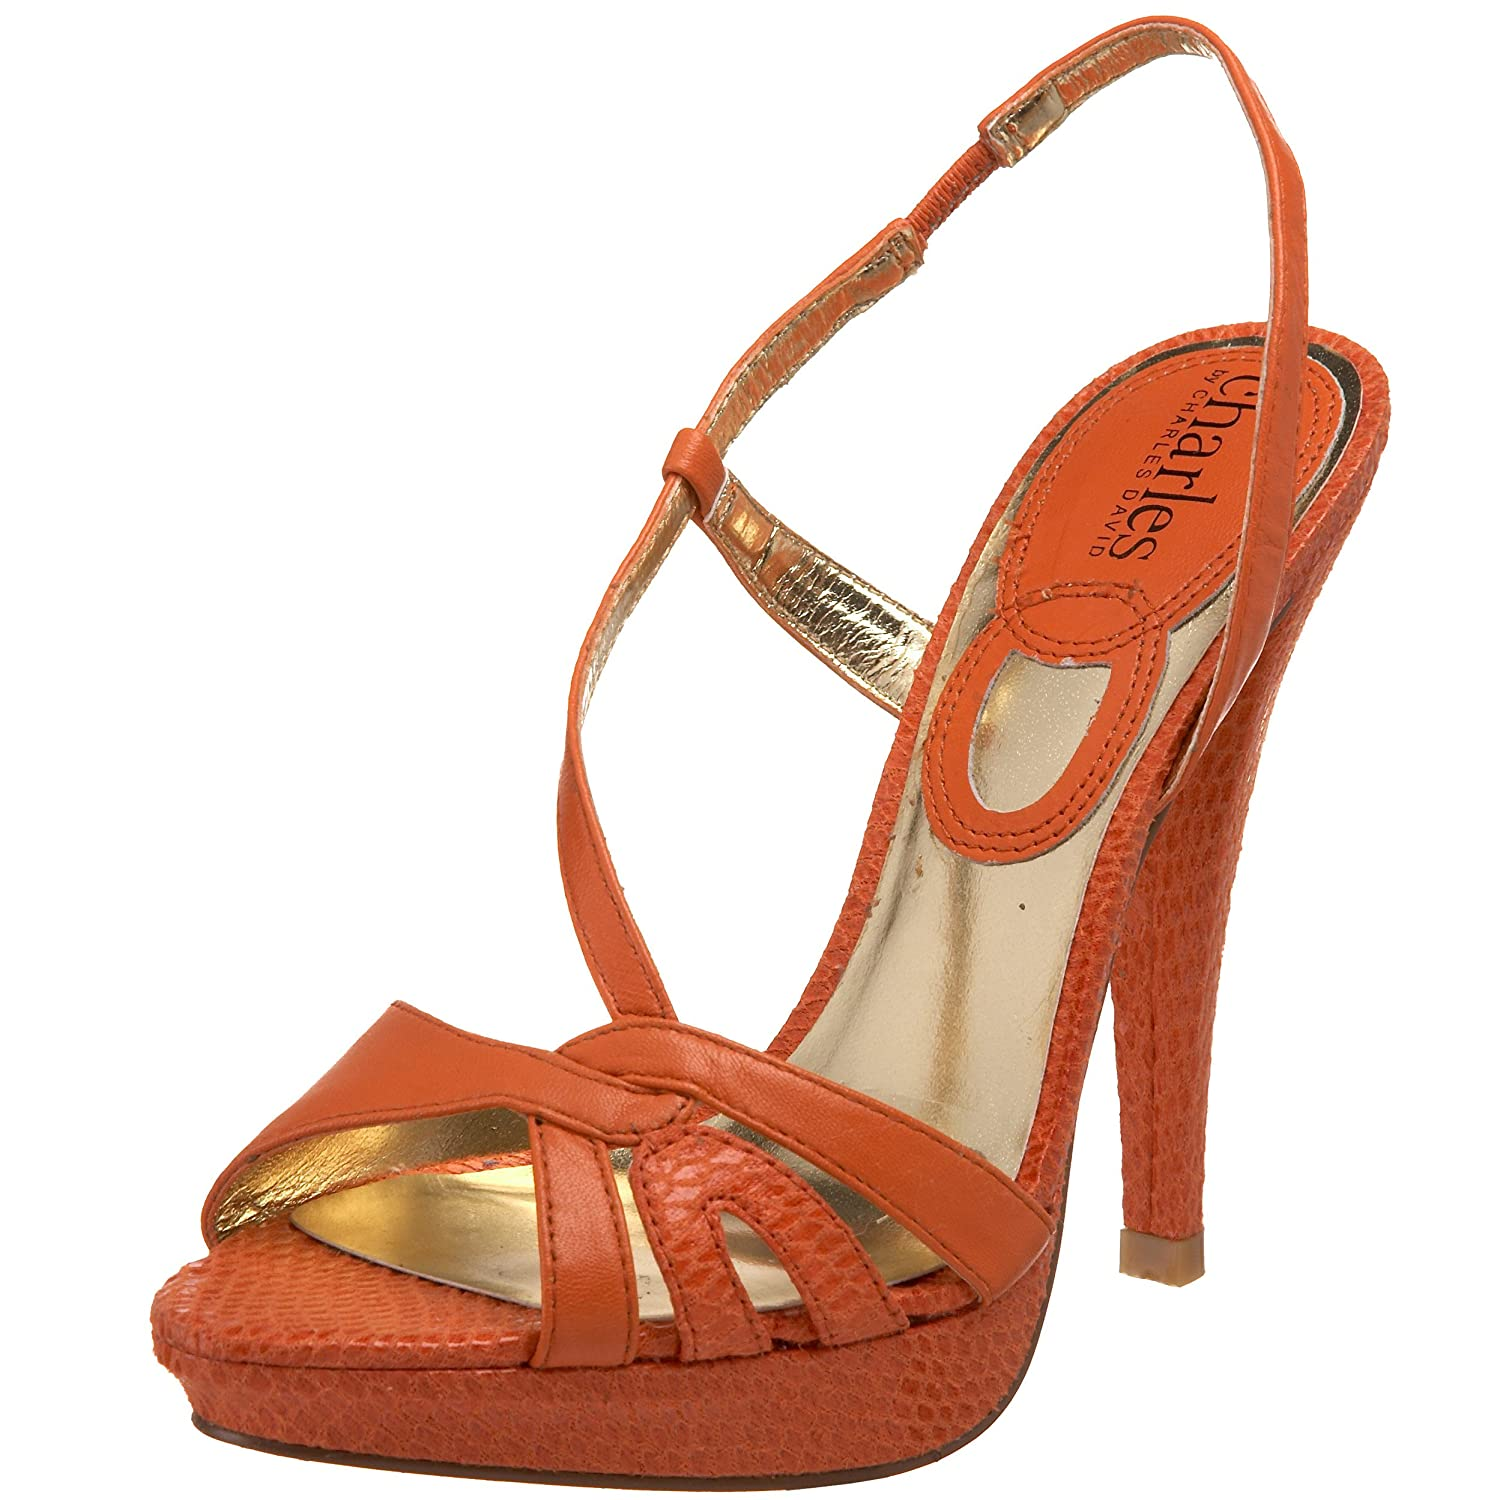 Charles by Charles David -  Anise Platform Sandal :  heeled sandals shoes womens shoes platform sandal